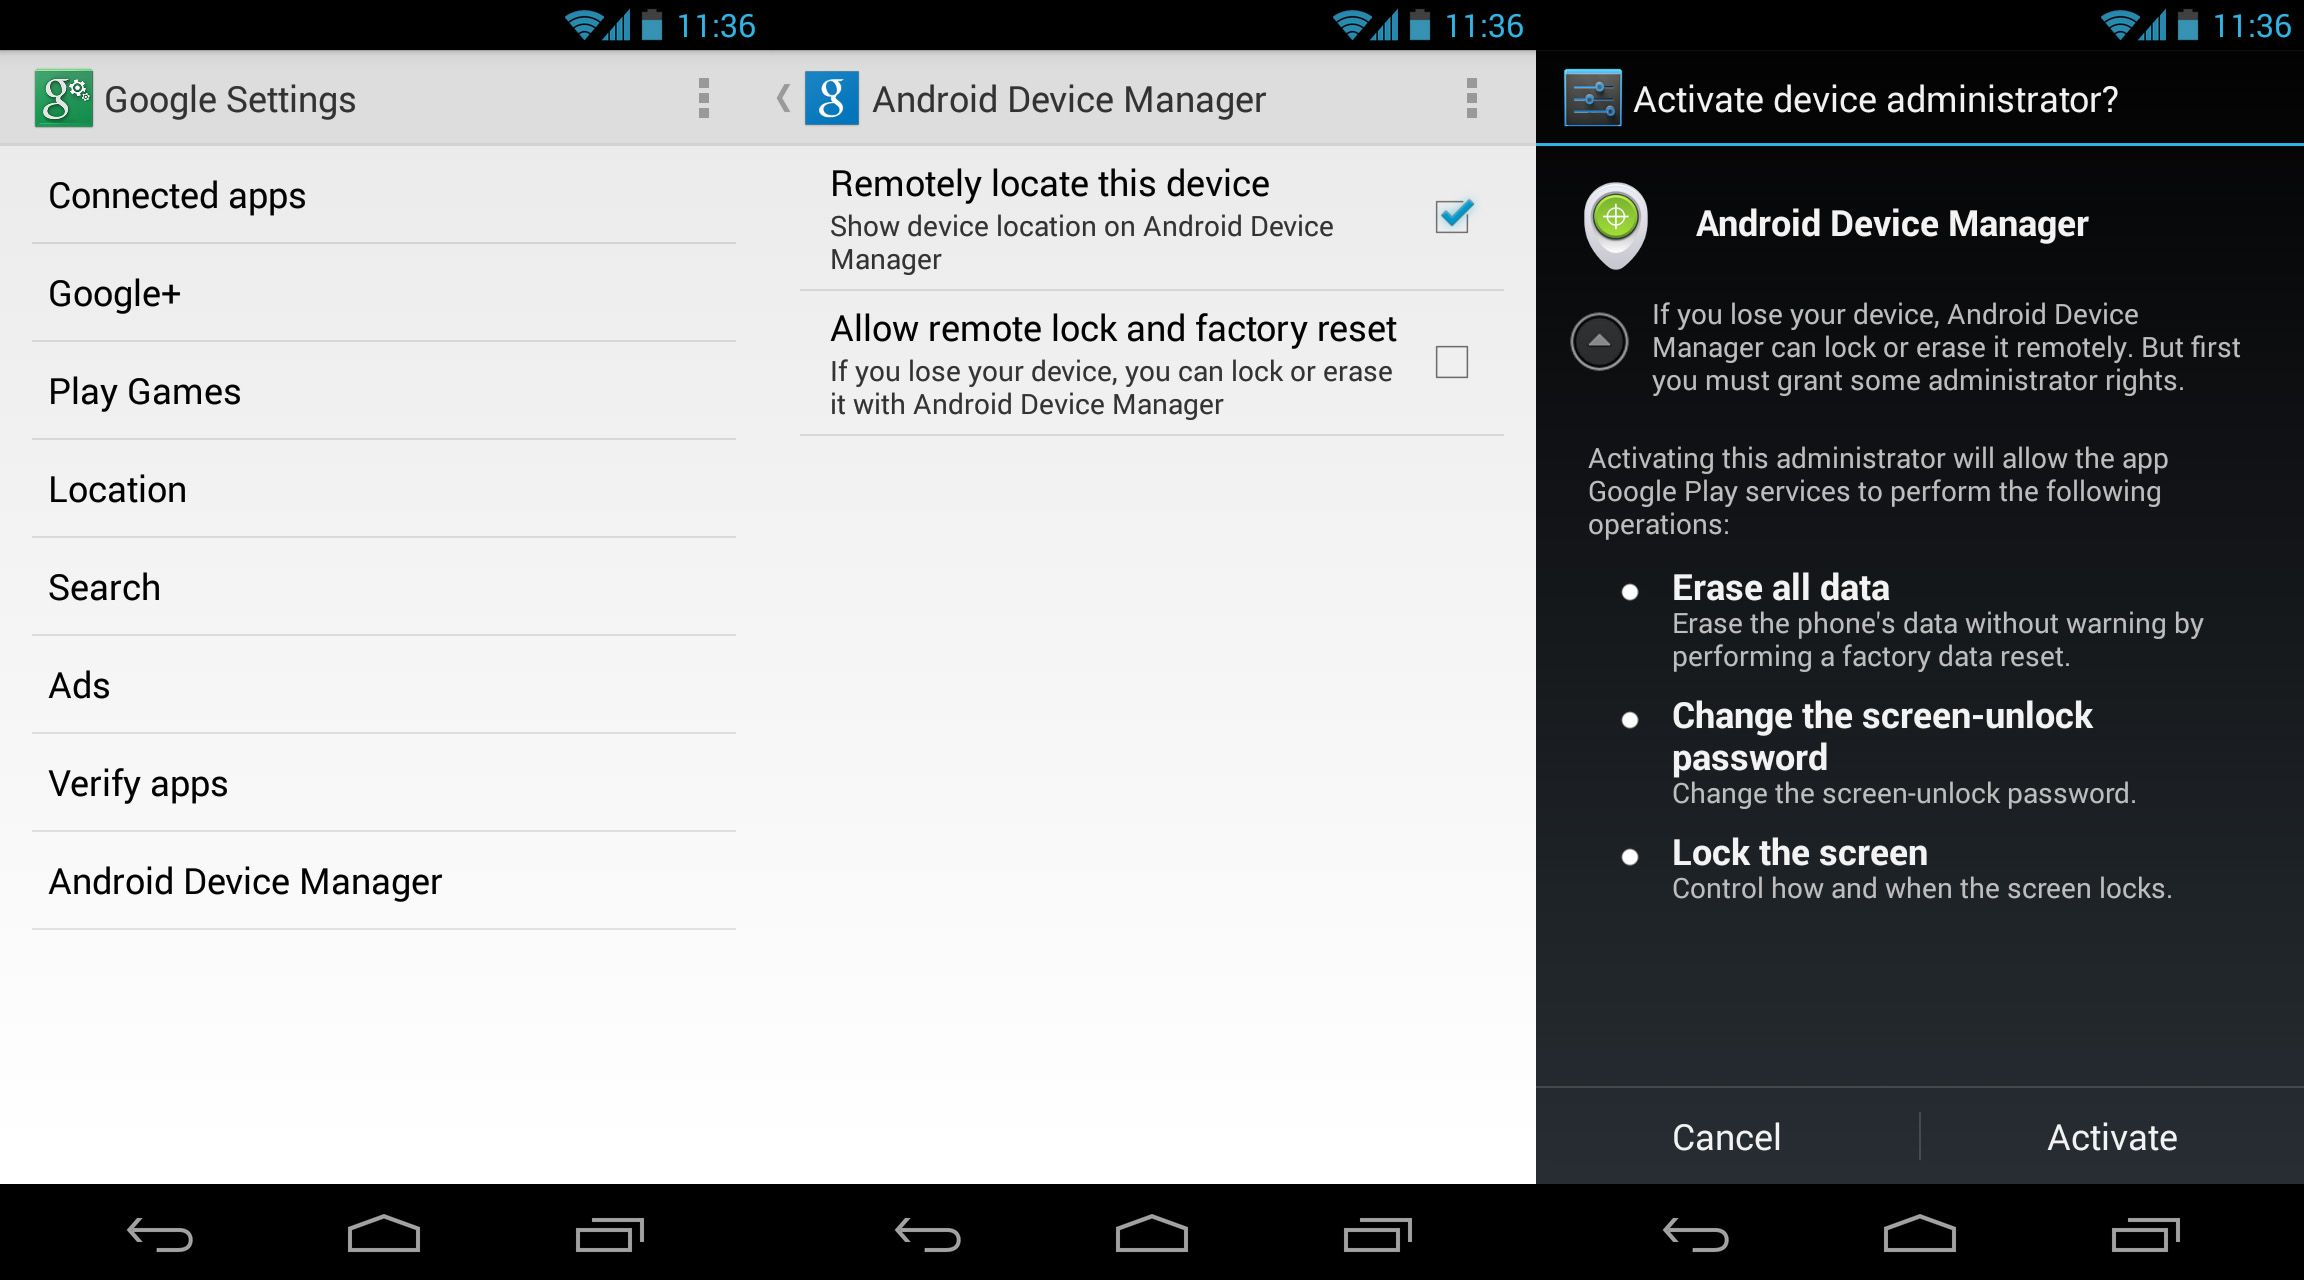 Android-device-manager-activation